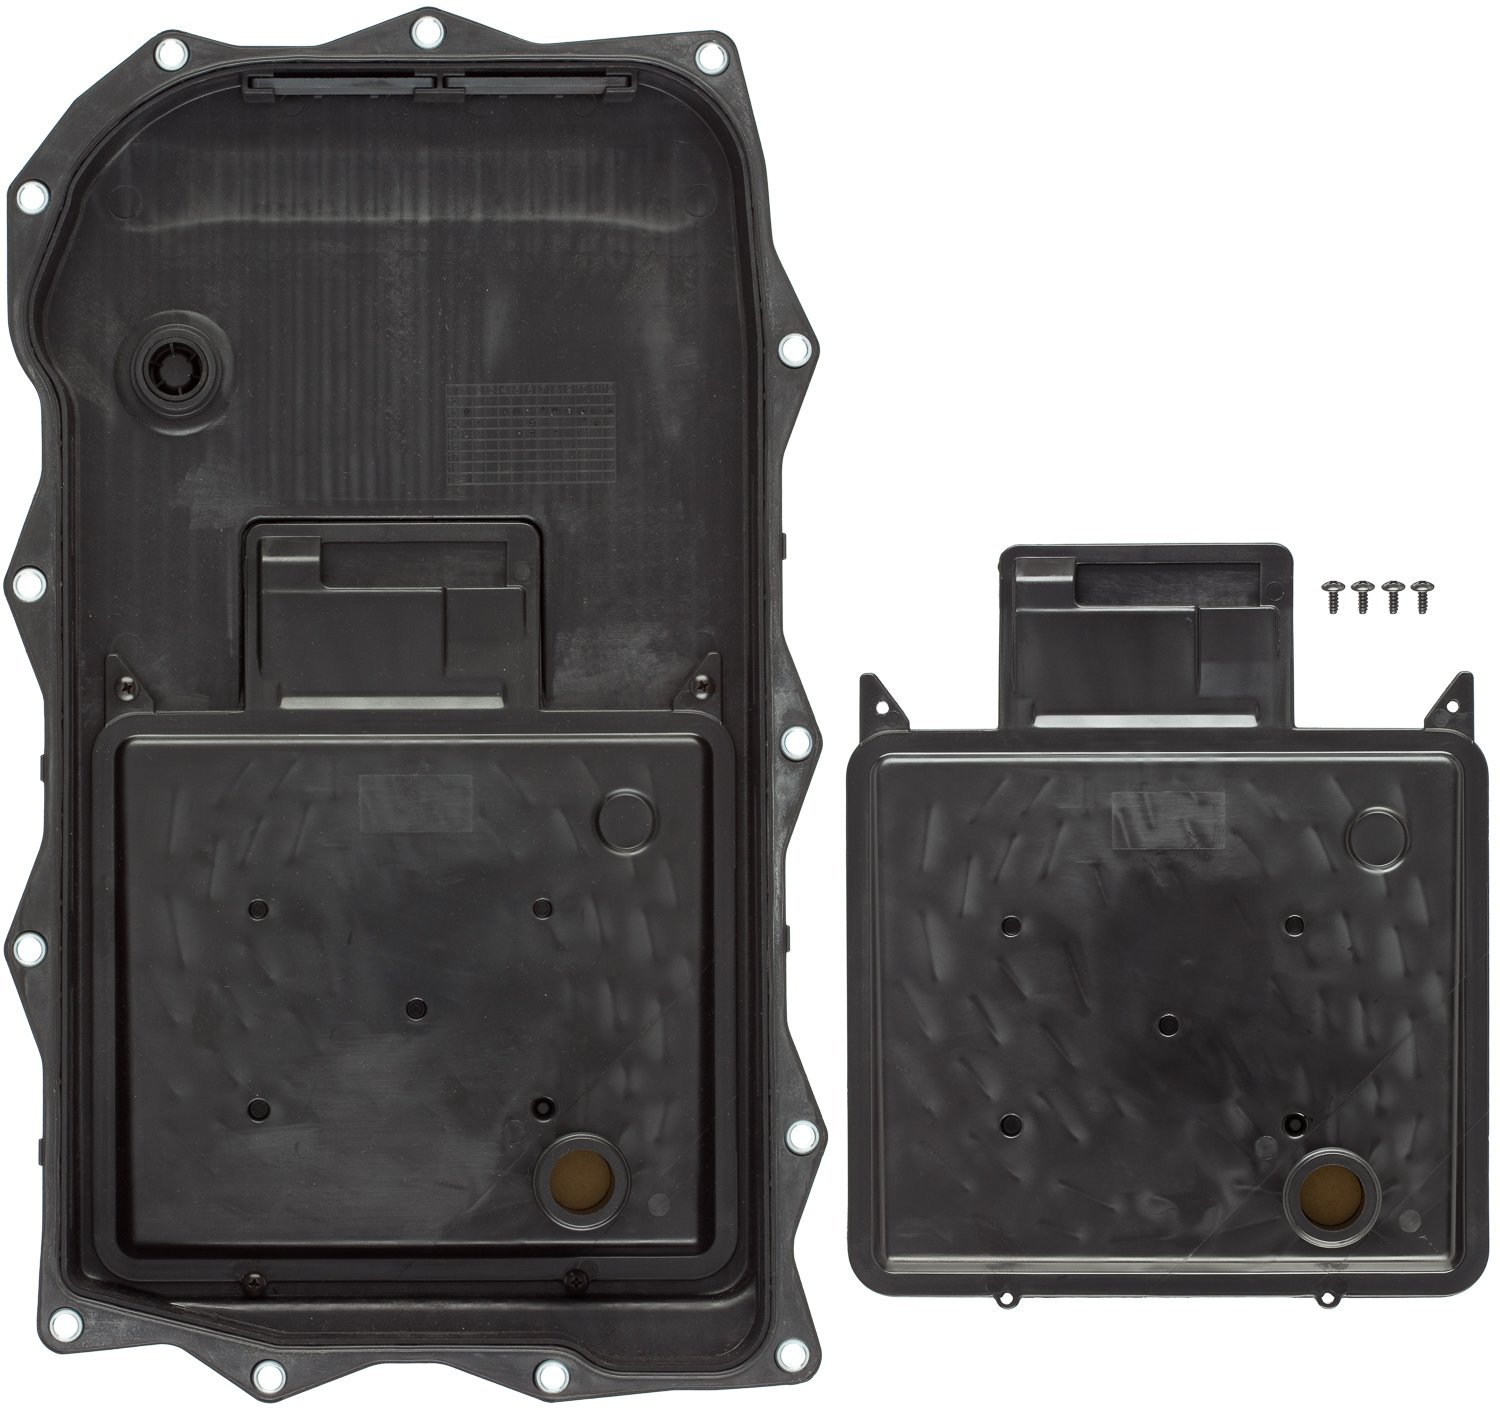 Atp B 453 Automatic Transmission Oil Pan And Integrated Dodge Ram Gas Fuel Filter Location Automotive